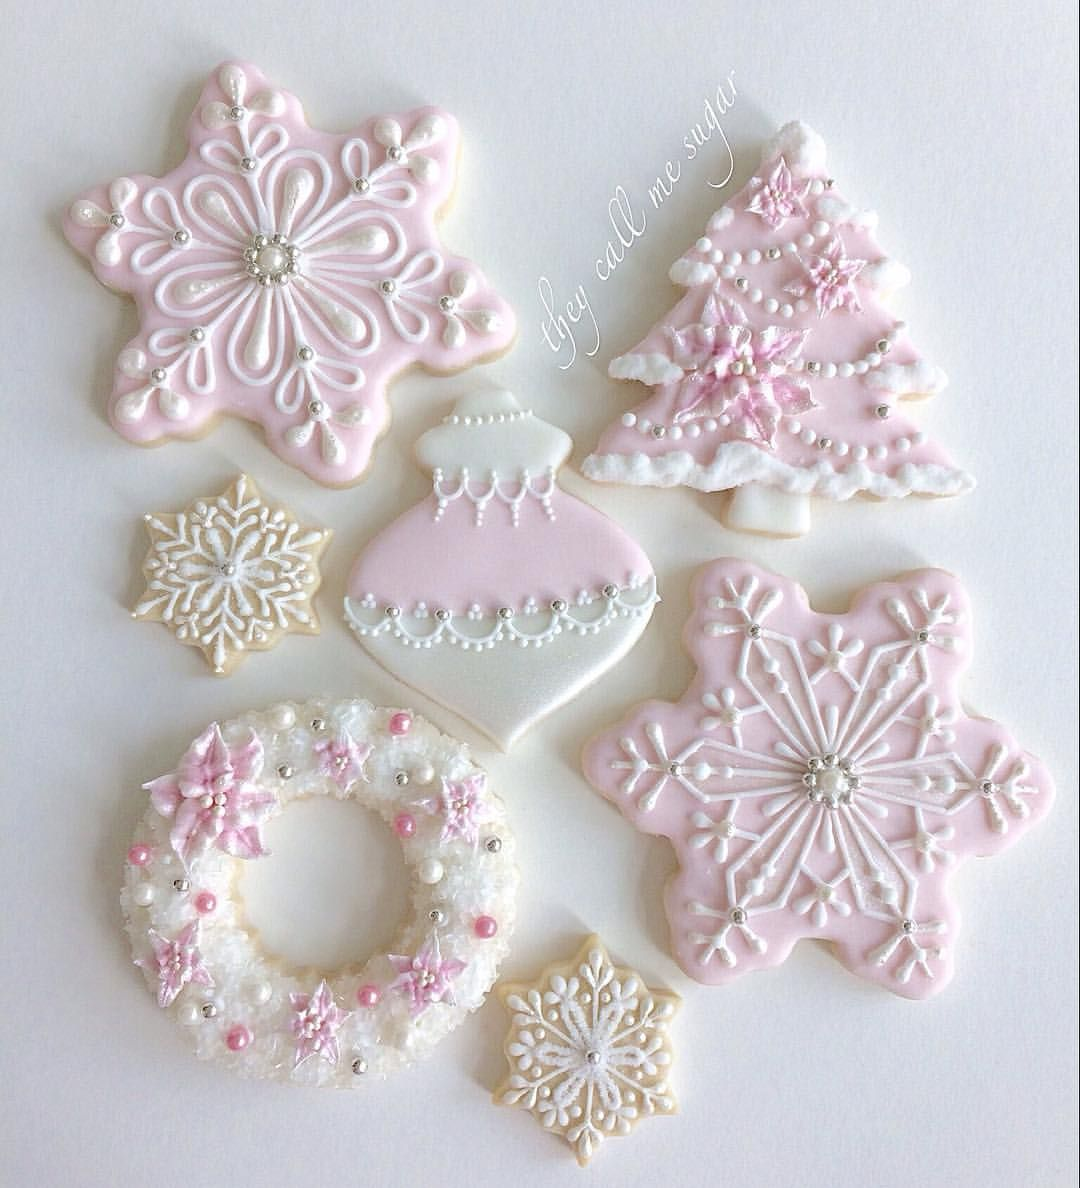 The Whole Set Christmas Cookies Make The Best Gifts